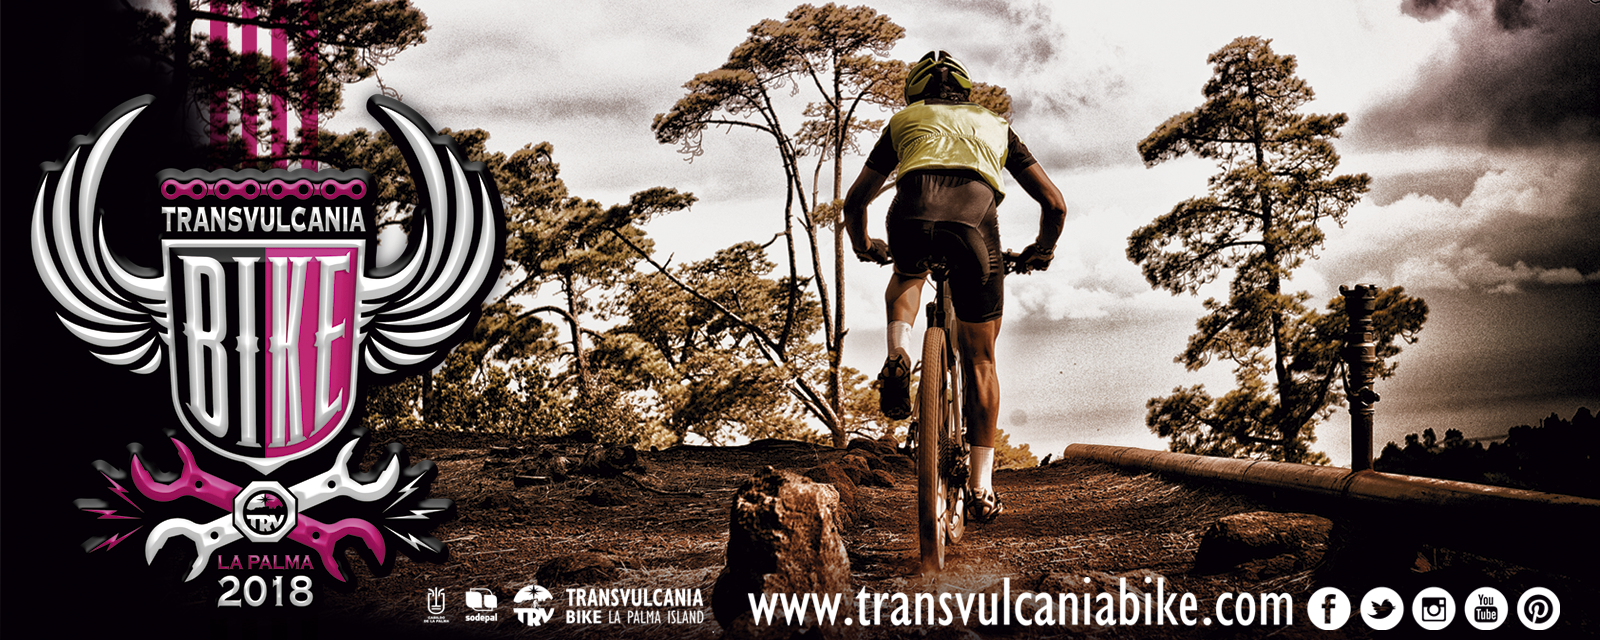 BTT: TRANSVULCANIA BIKE 2018 ABRE INSCRIPCIONES (29SEP/30k-75k-Descenso) Grandes carreras de mountain bike en La Palma